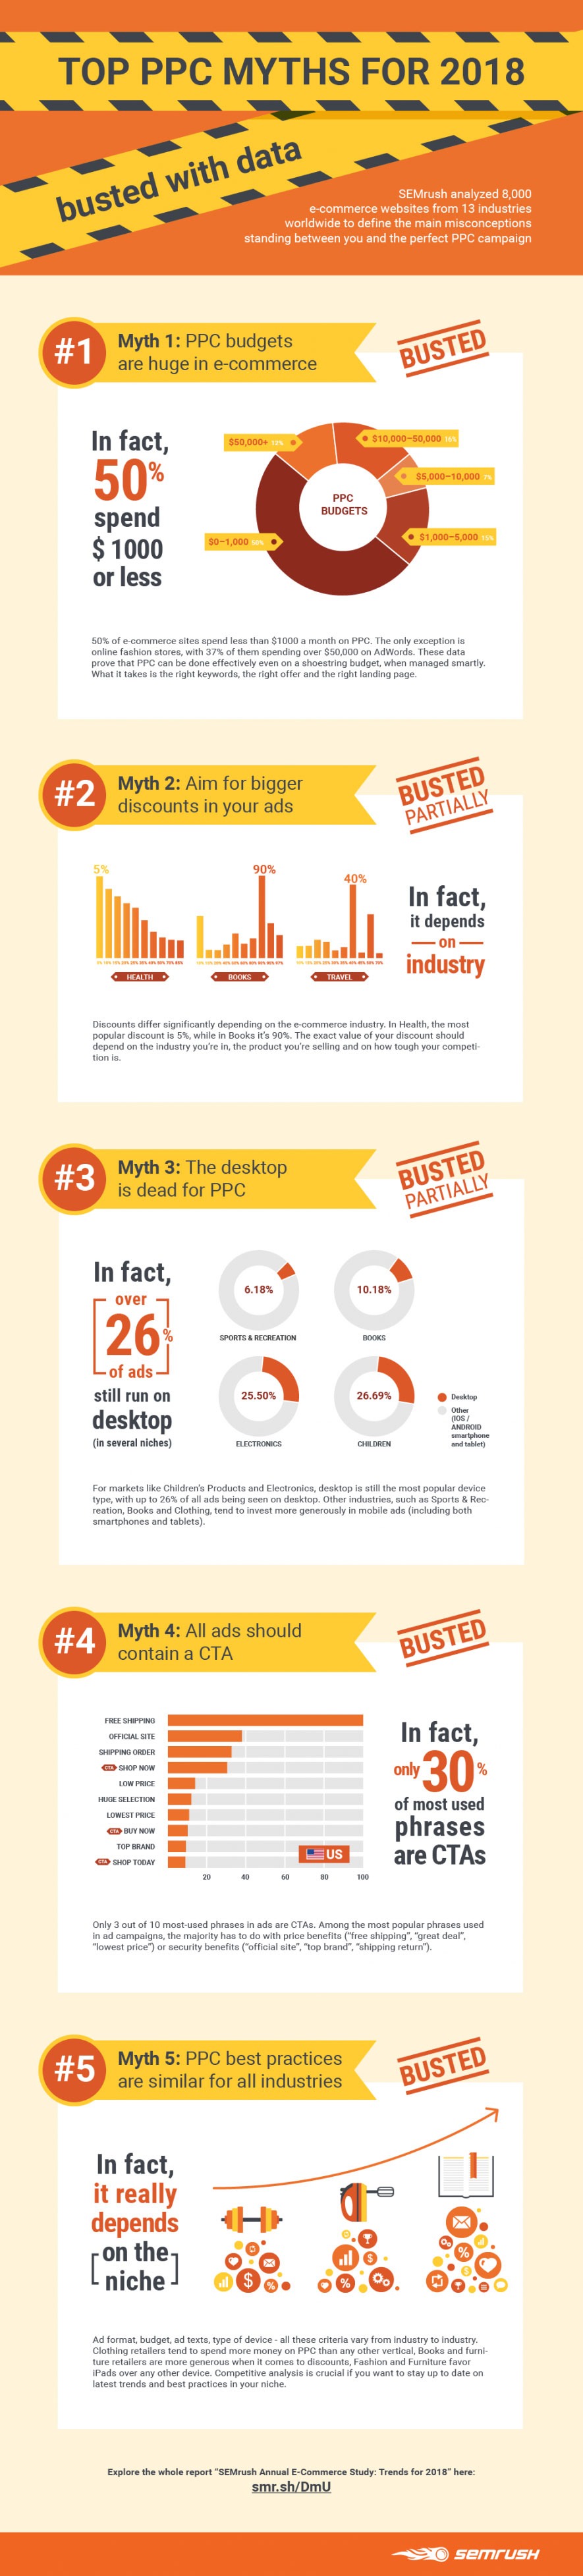 Top PPC Myths For 2018 … Busted! [Infographic]